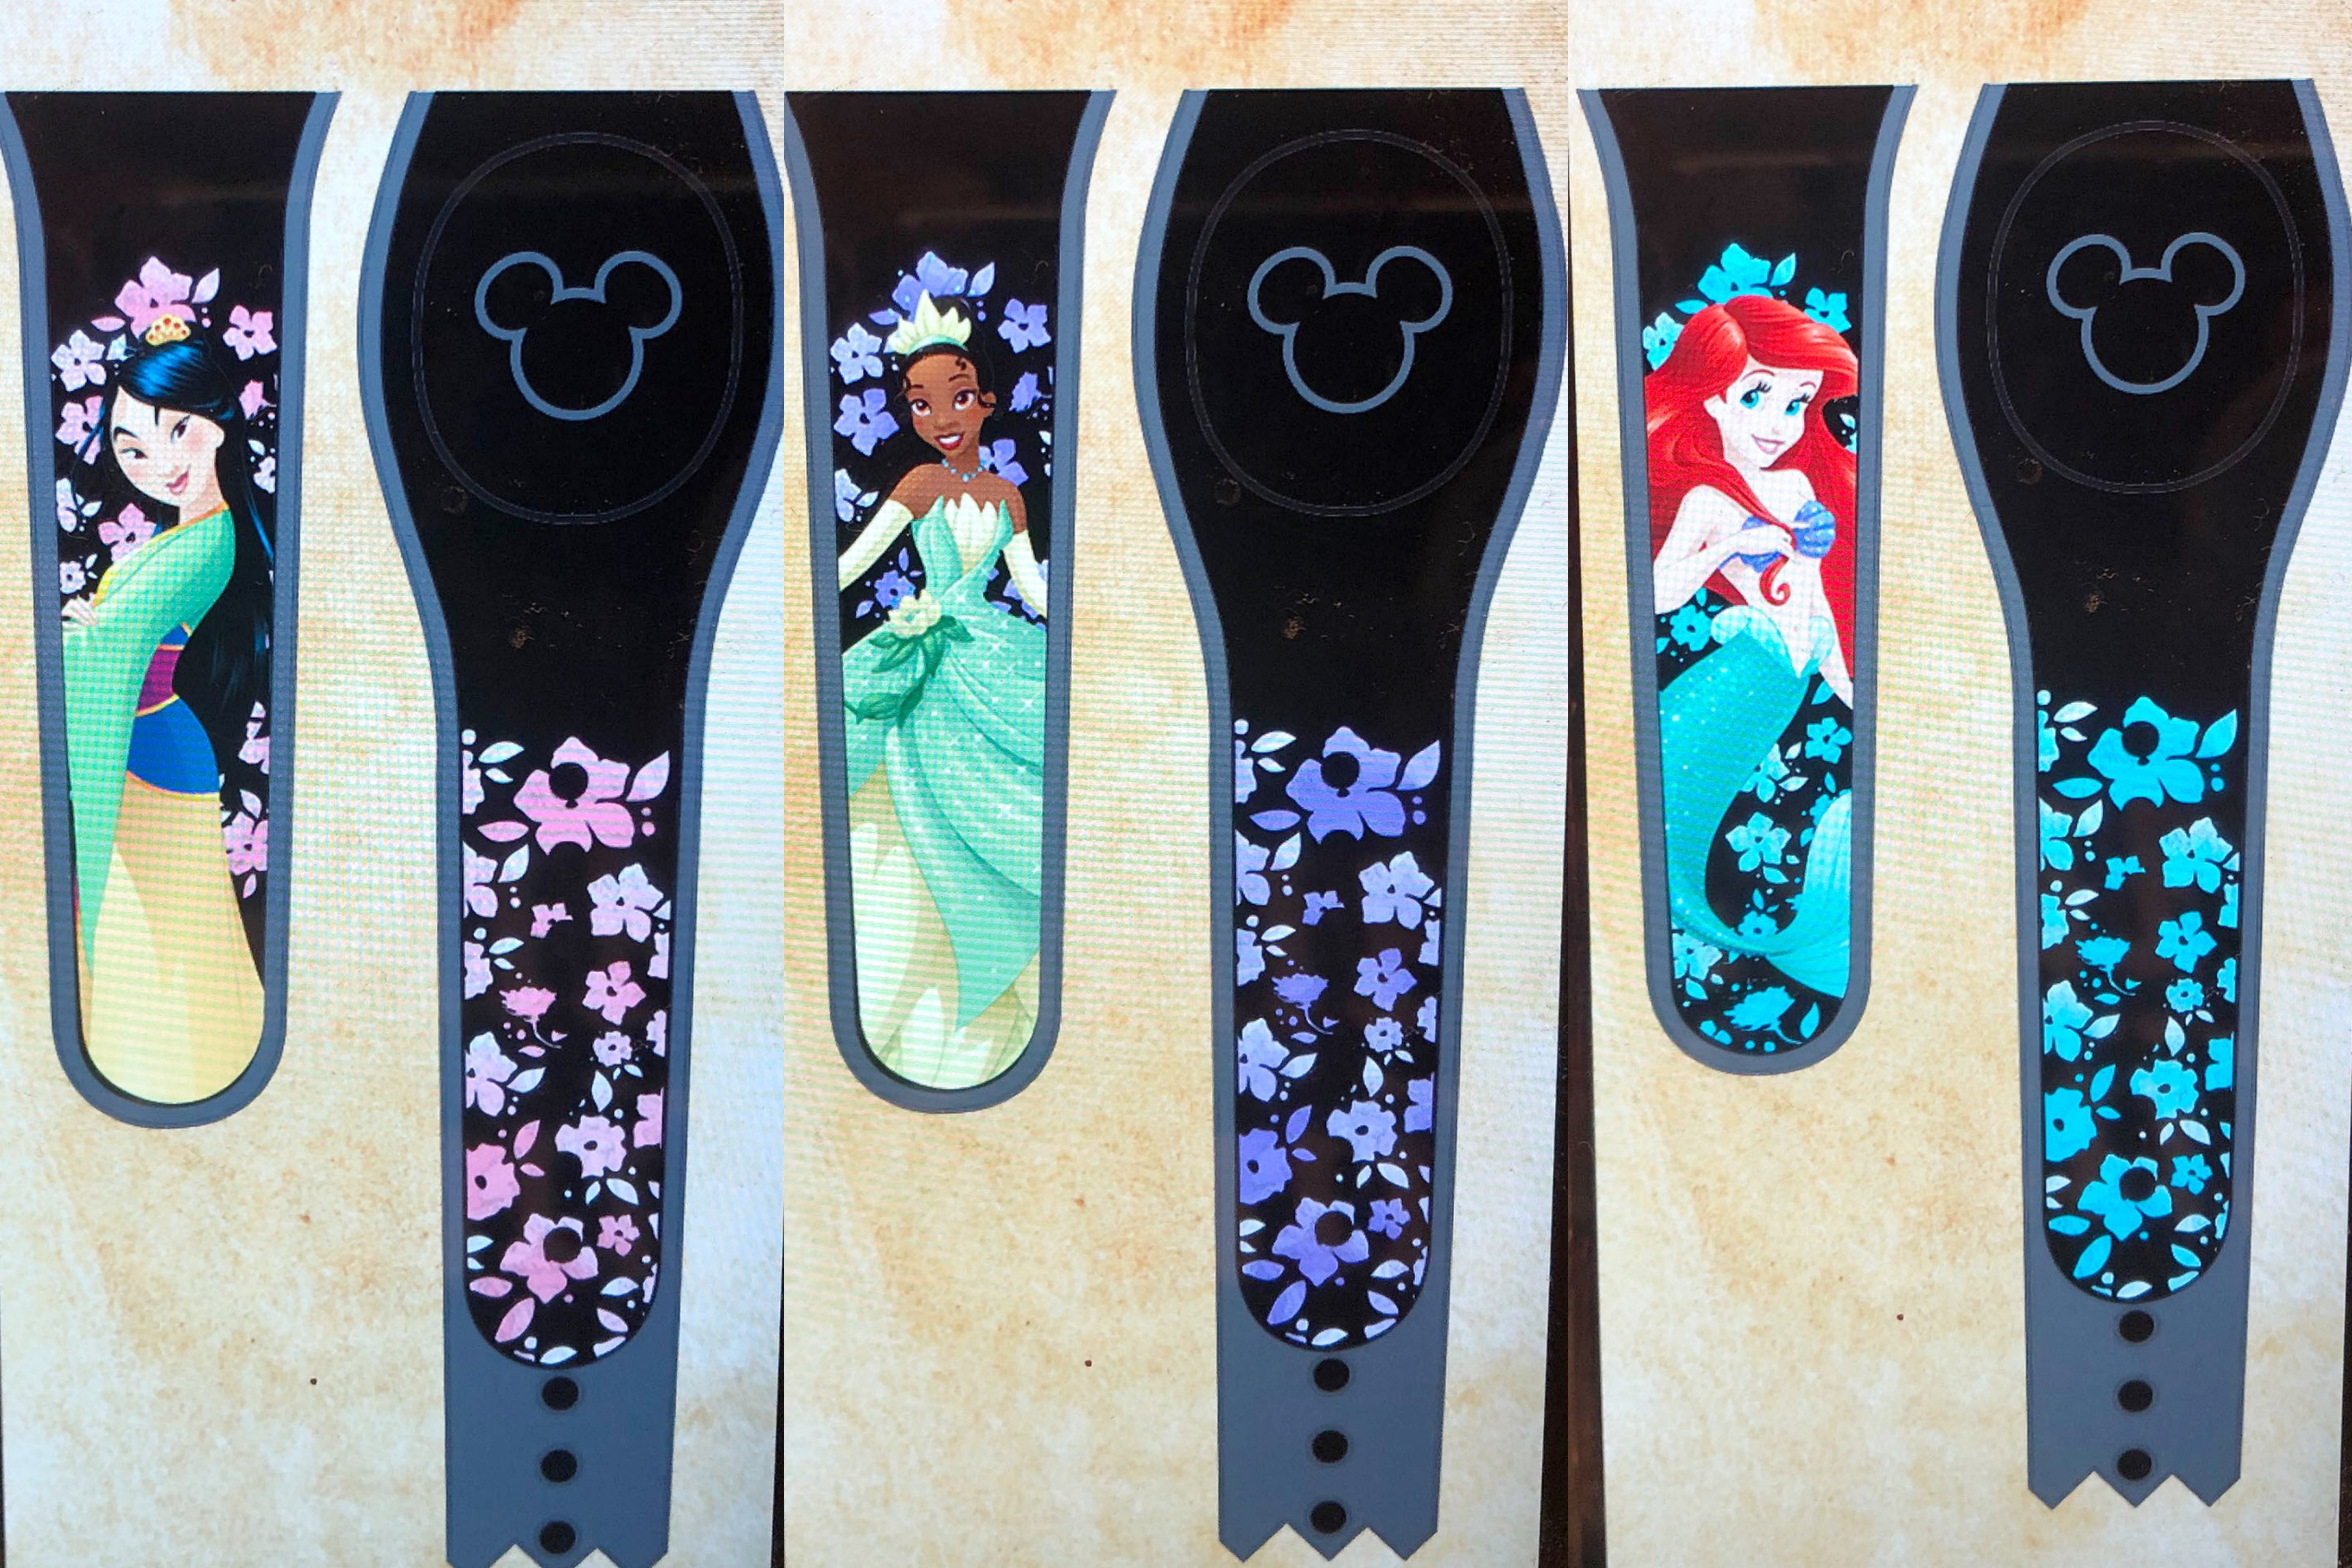 princess-magicband-collage-02-01-2020.jpg